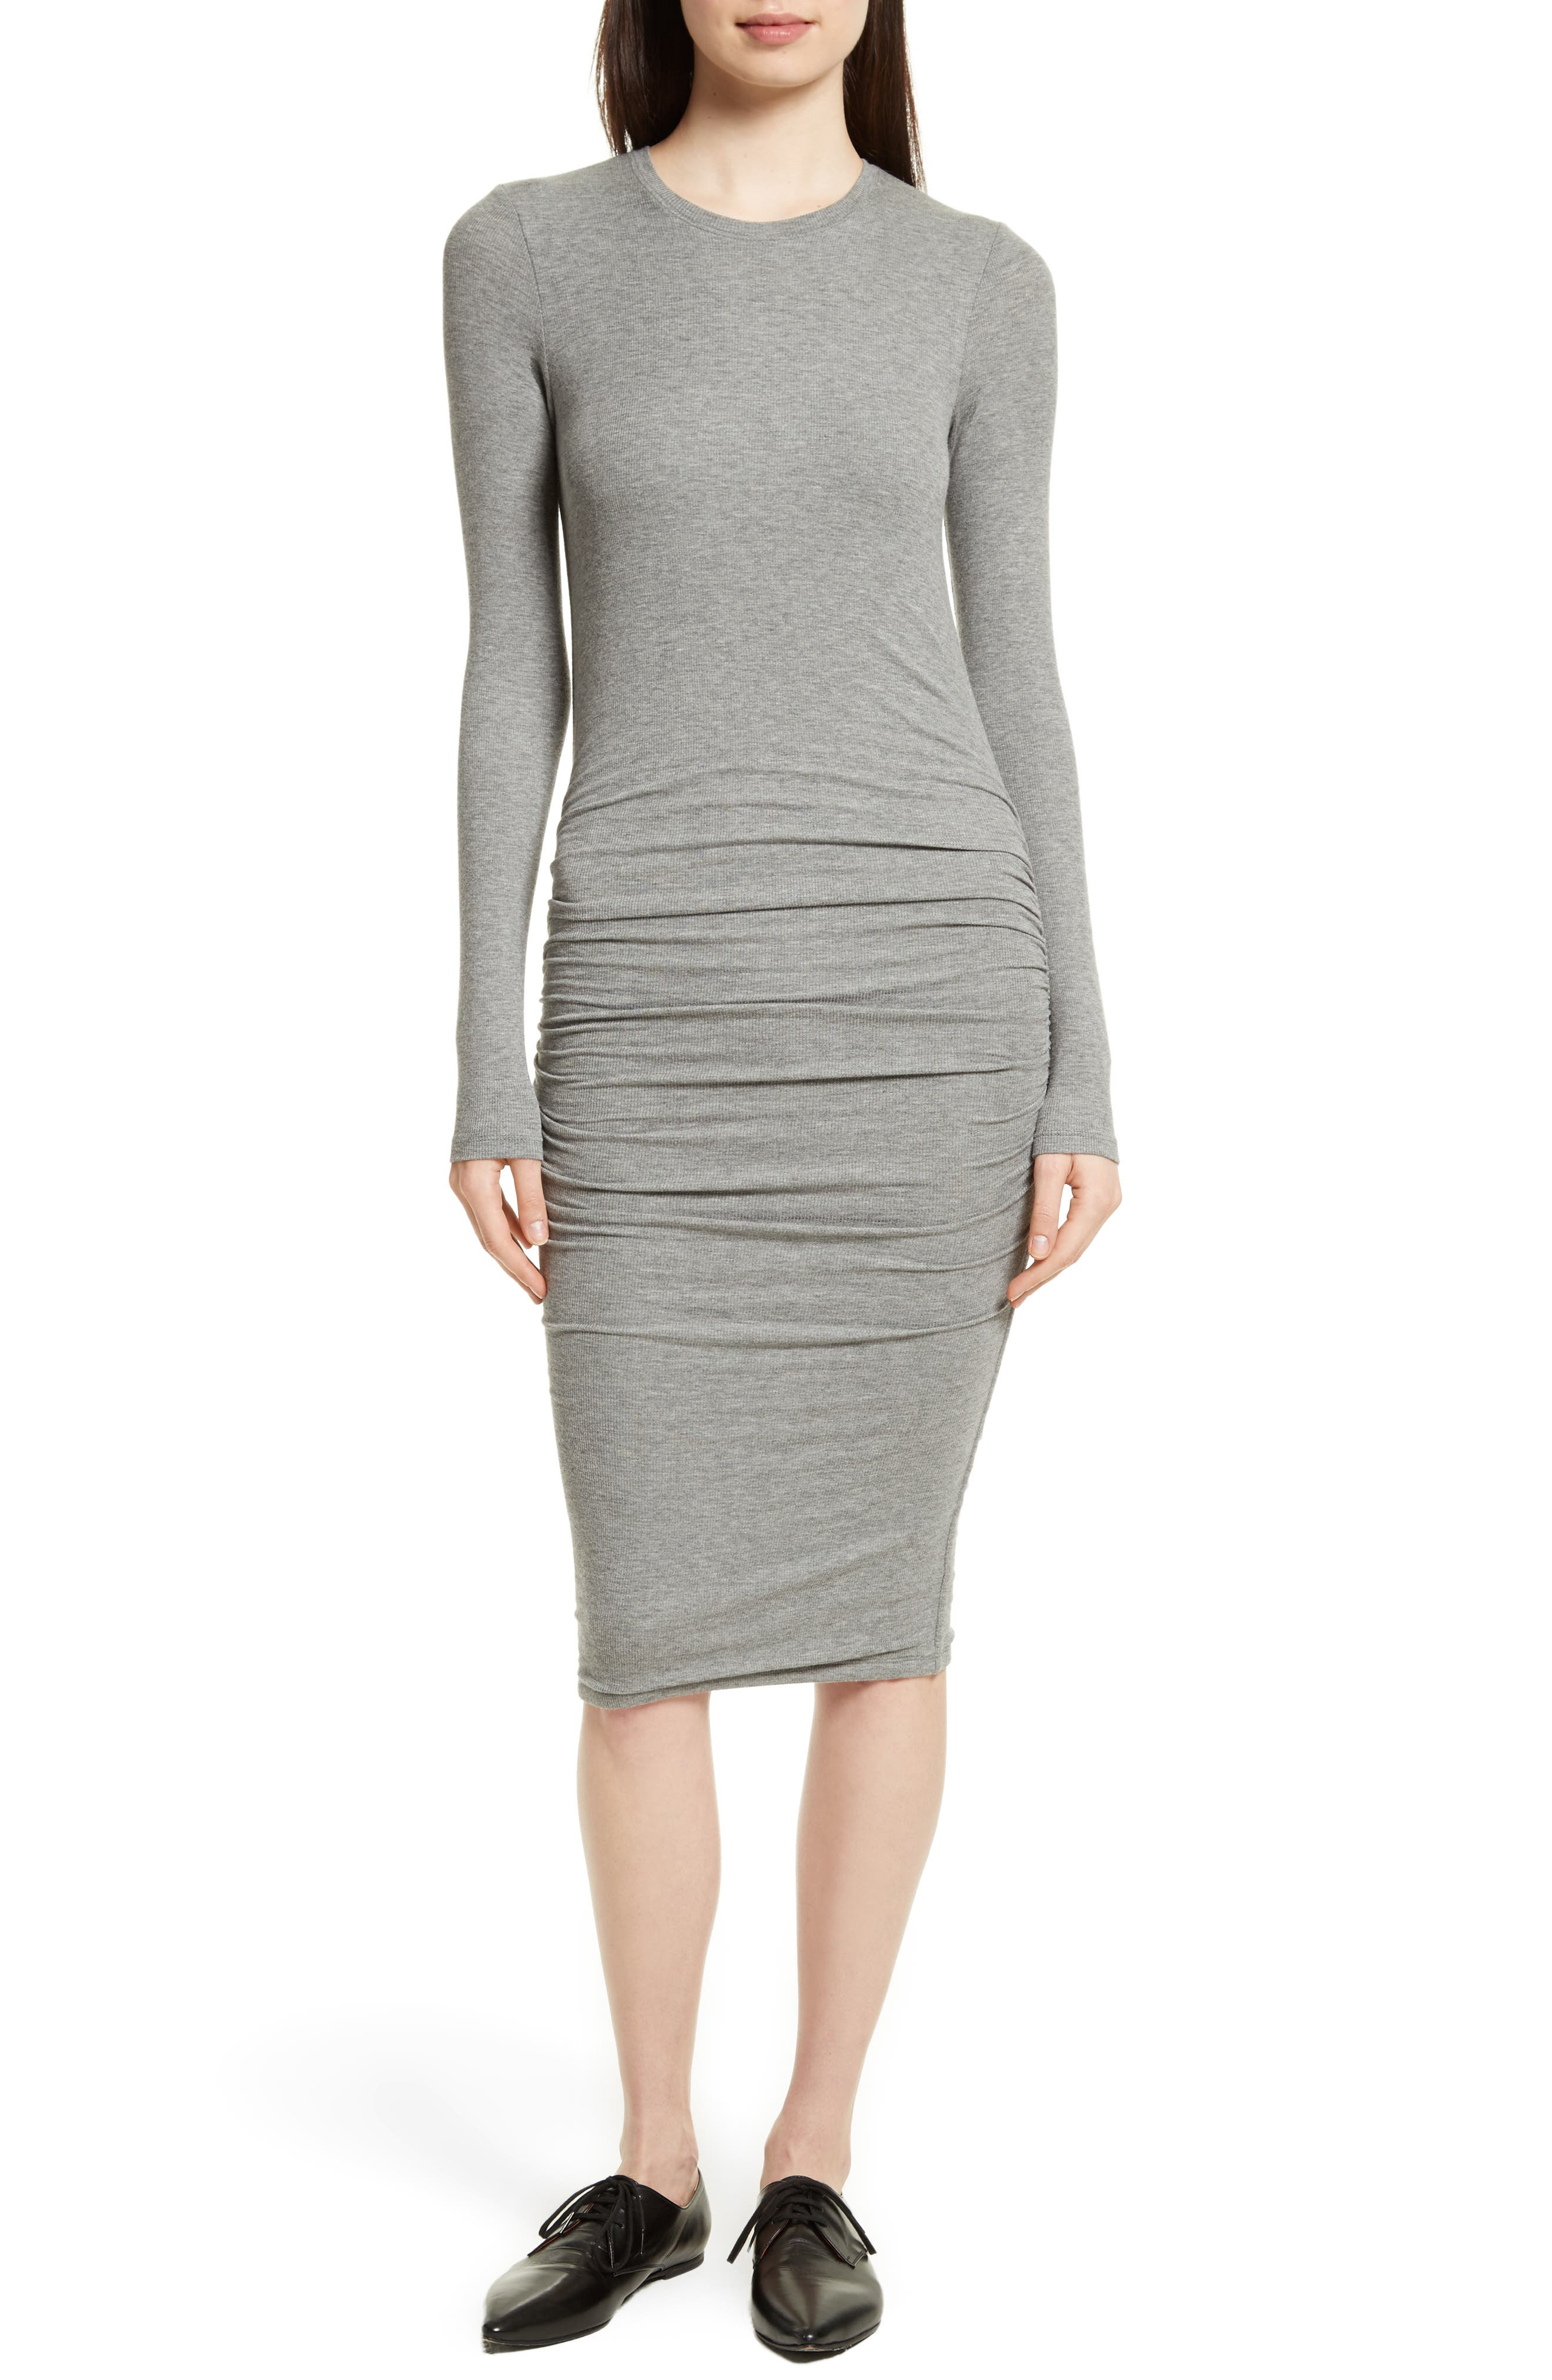 Alternate Image 1 Selected - ATM Anthony Thomas Melillo Ribbed Stretch Jersey Dress